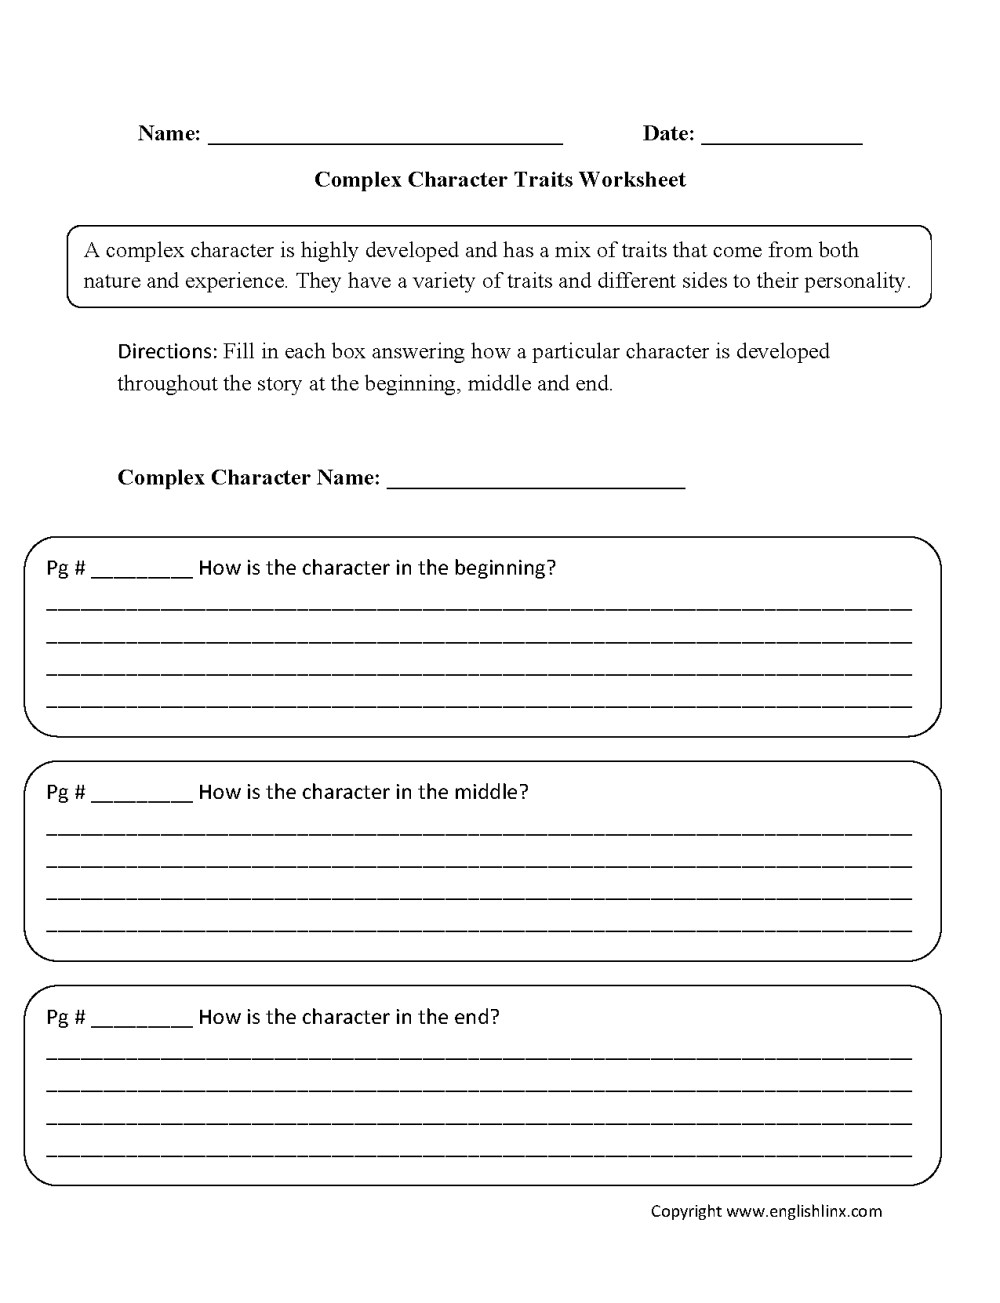 medium resolution of Character Traits For Kids Worksheets   Printable Worksheets and Activities  for Teachers